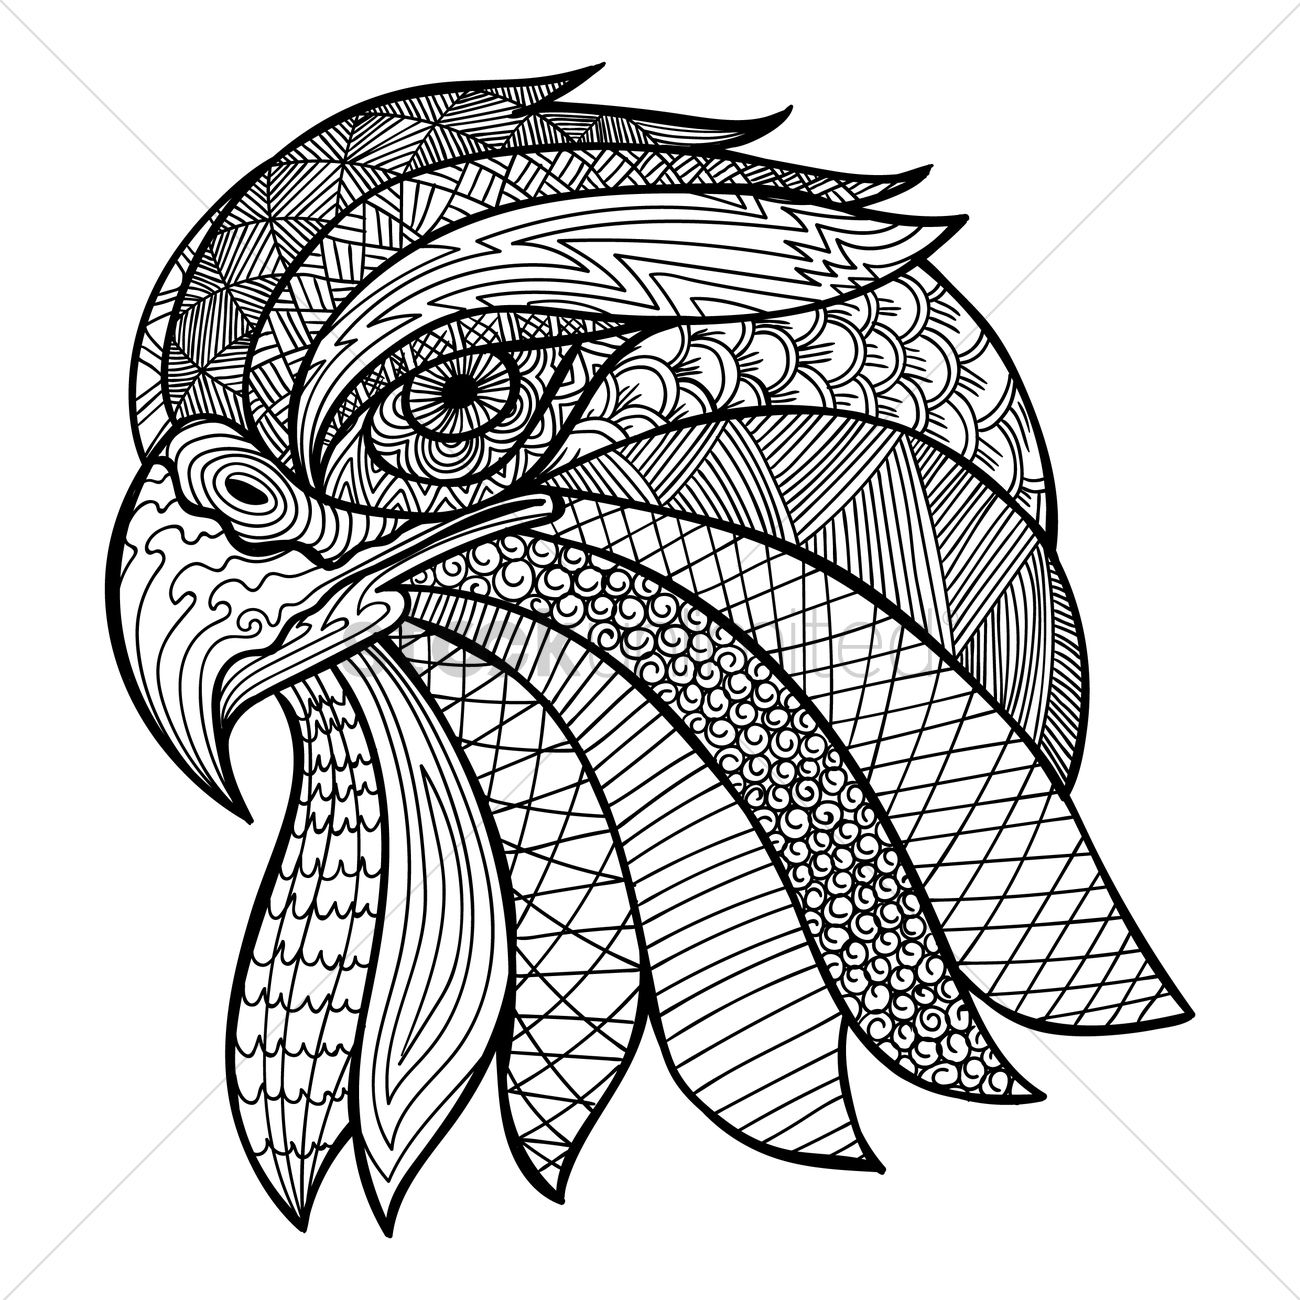 Intricate Eagle Design Vector Image